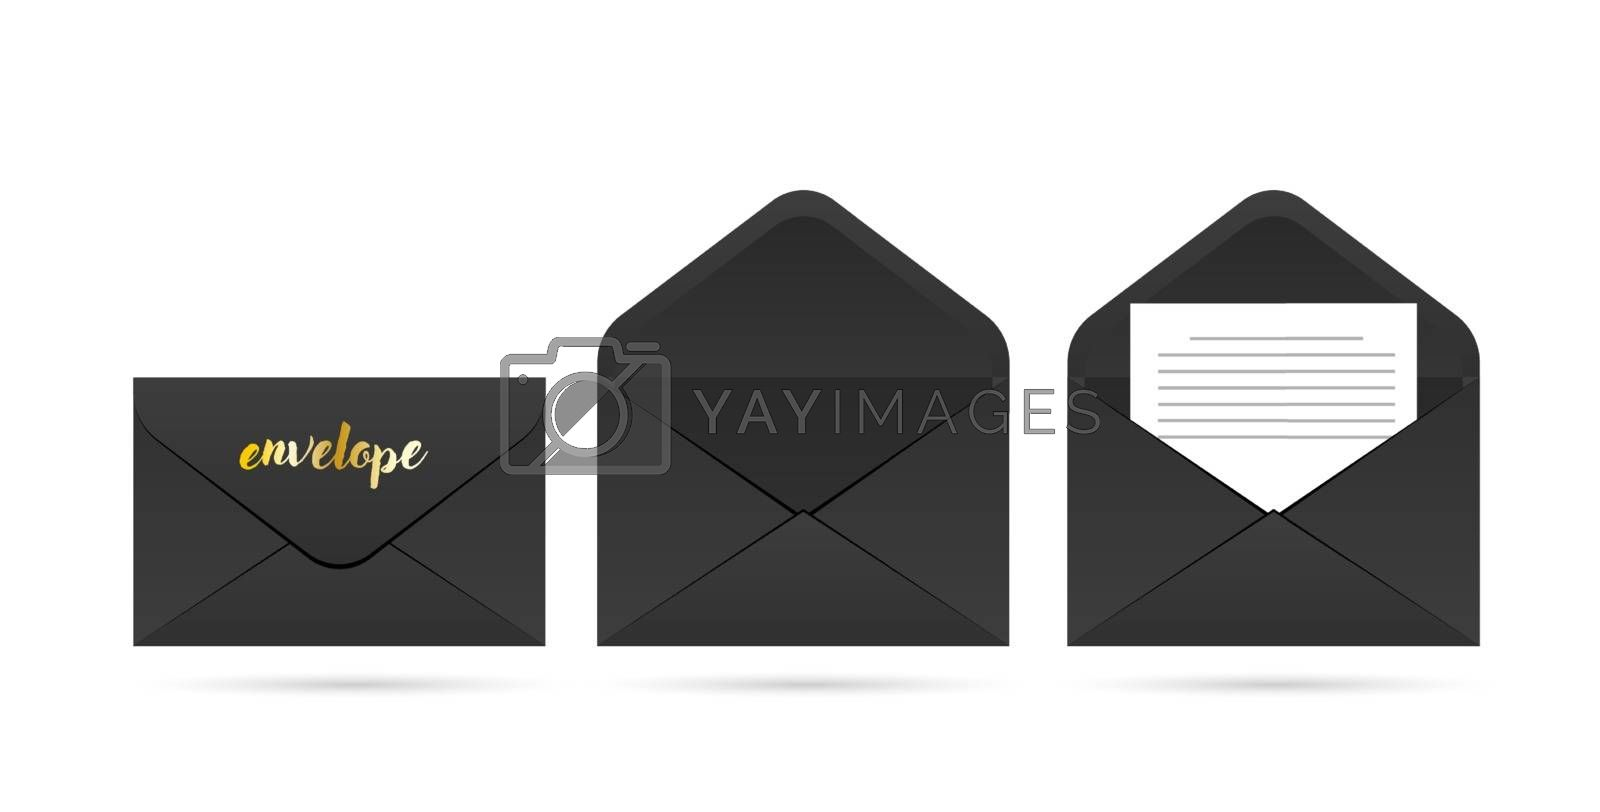 Black vector envelope set. Realistic dark mockup isolated on a background. Opened and closed black envelopes with golden decor. Templates of dark paper mail envelope for letter